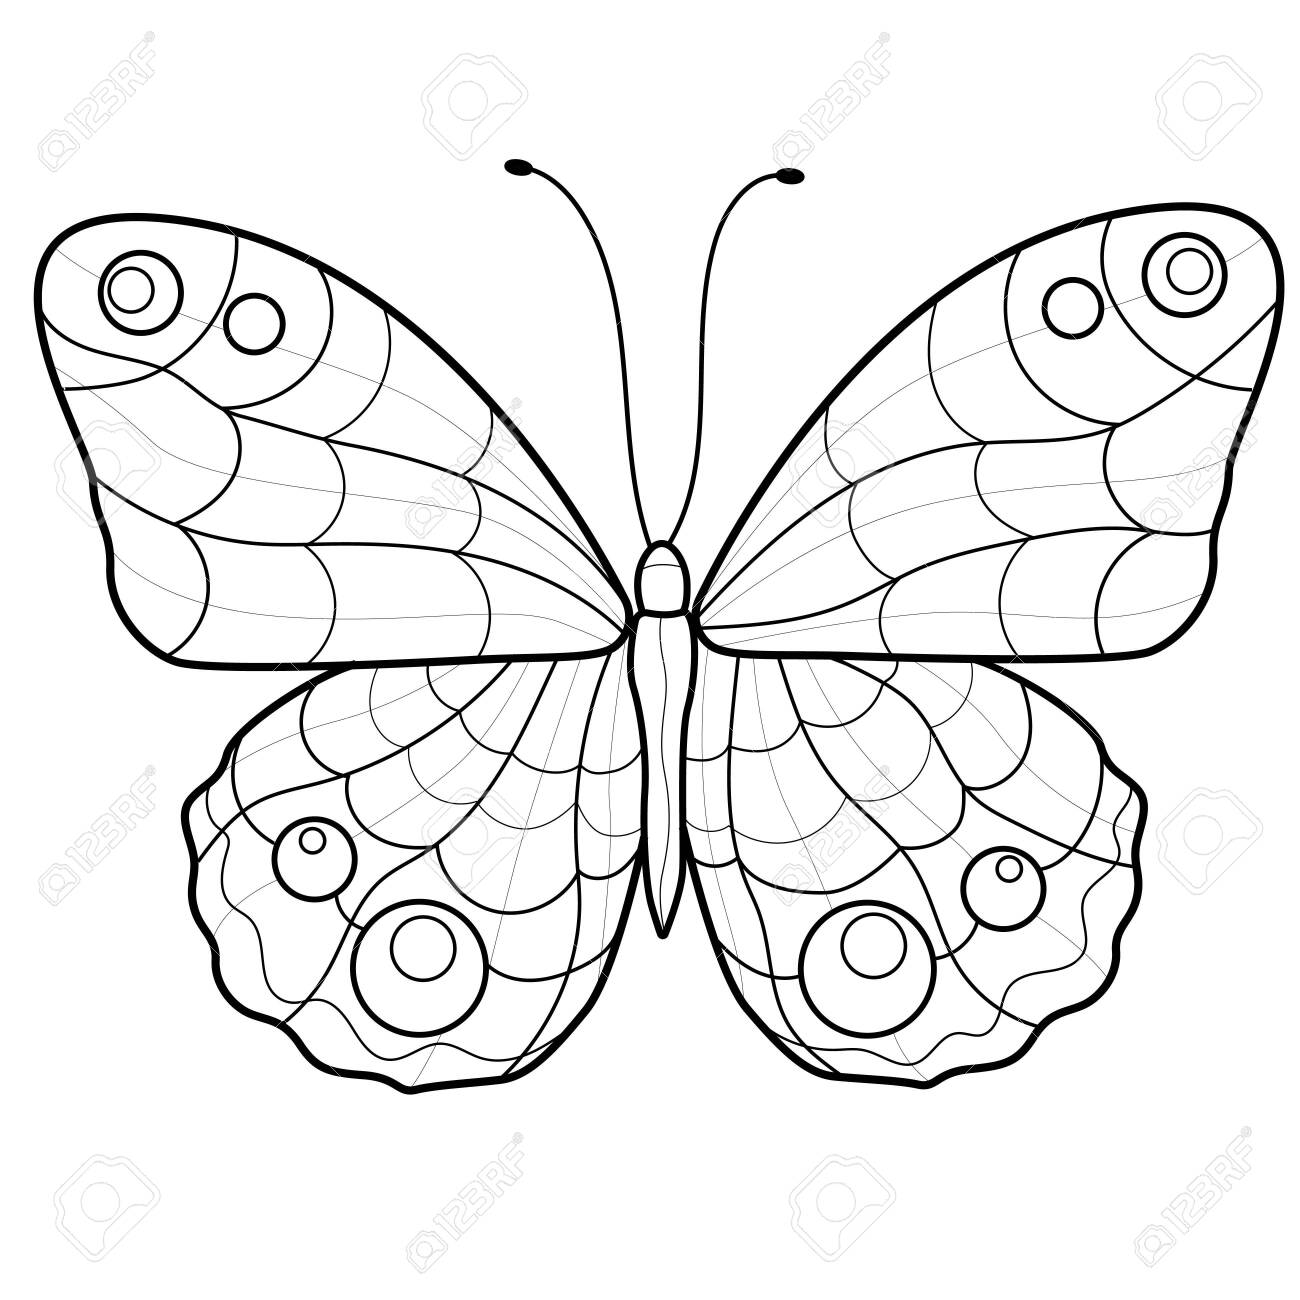 Beautiful butterfly. Coloring book antistress for children and adults. Illustration isolated on white background. Zen tangle style. Black and white drawing. - 153815578